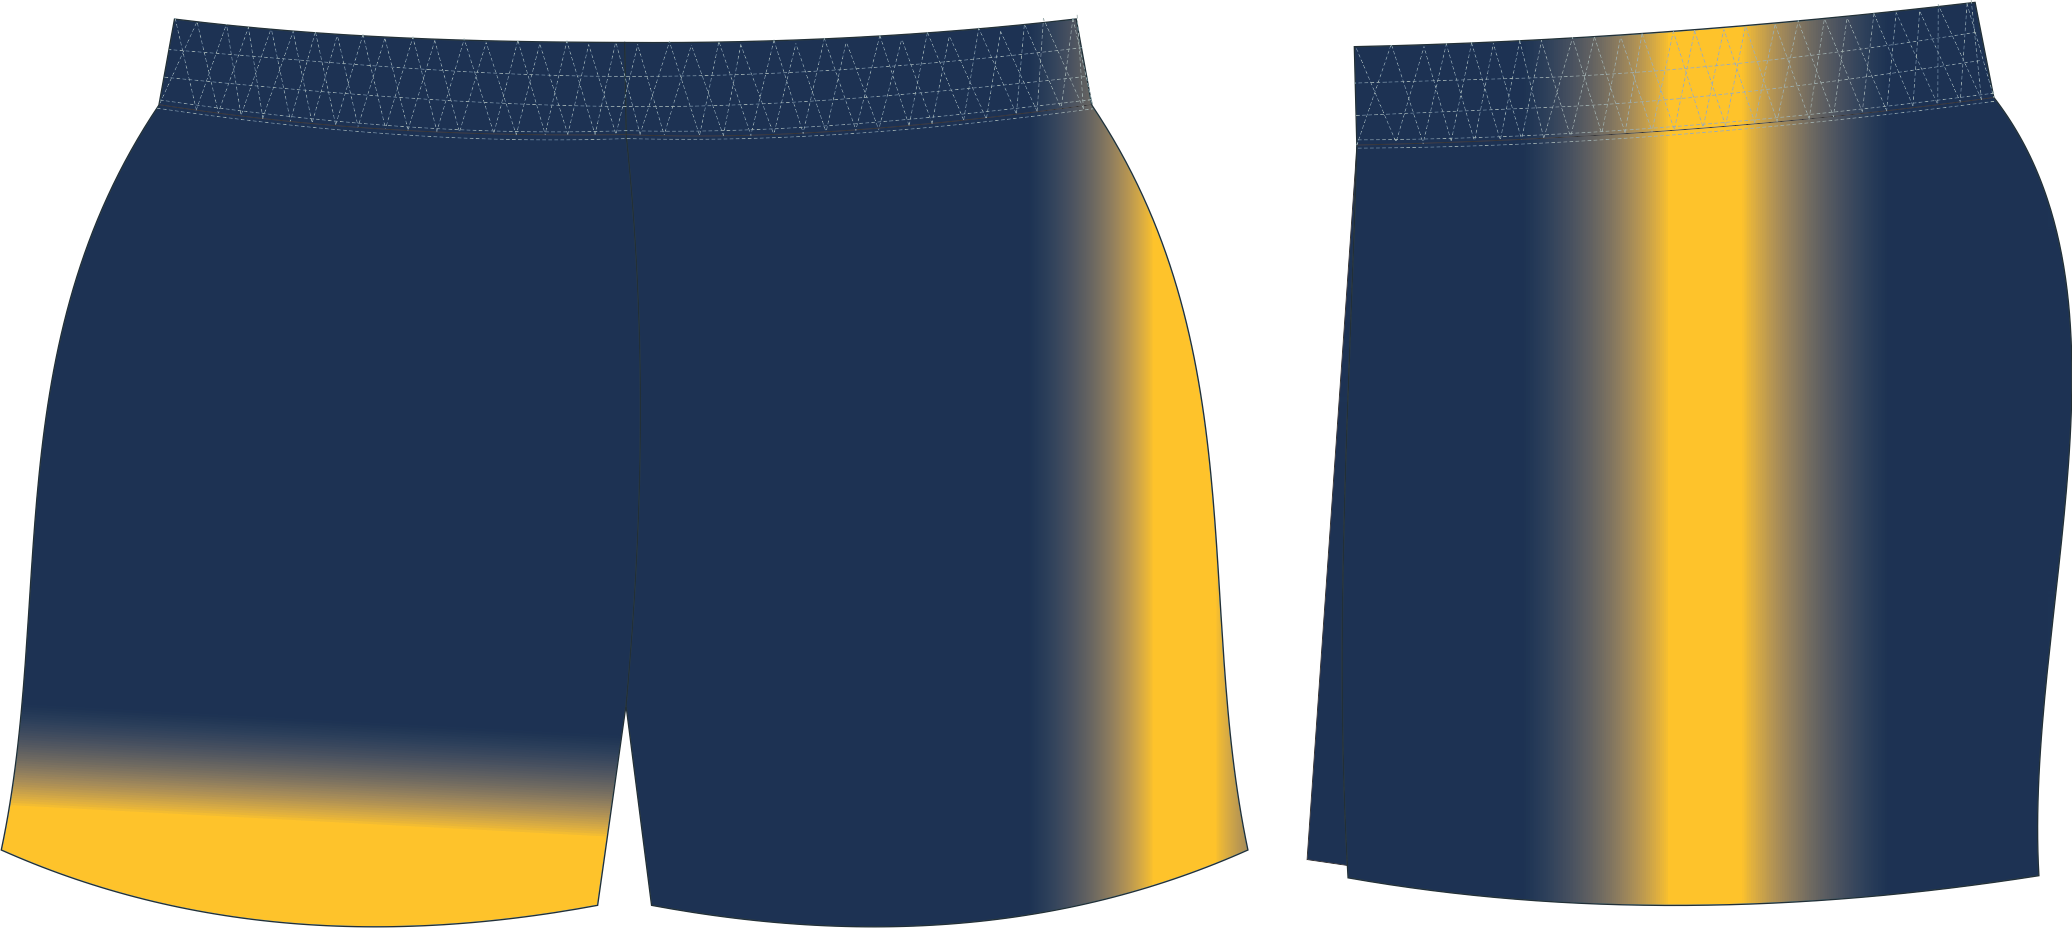 S205XSHT Navy Gold.png